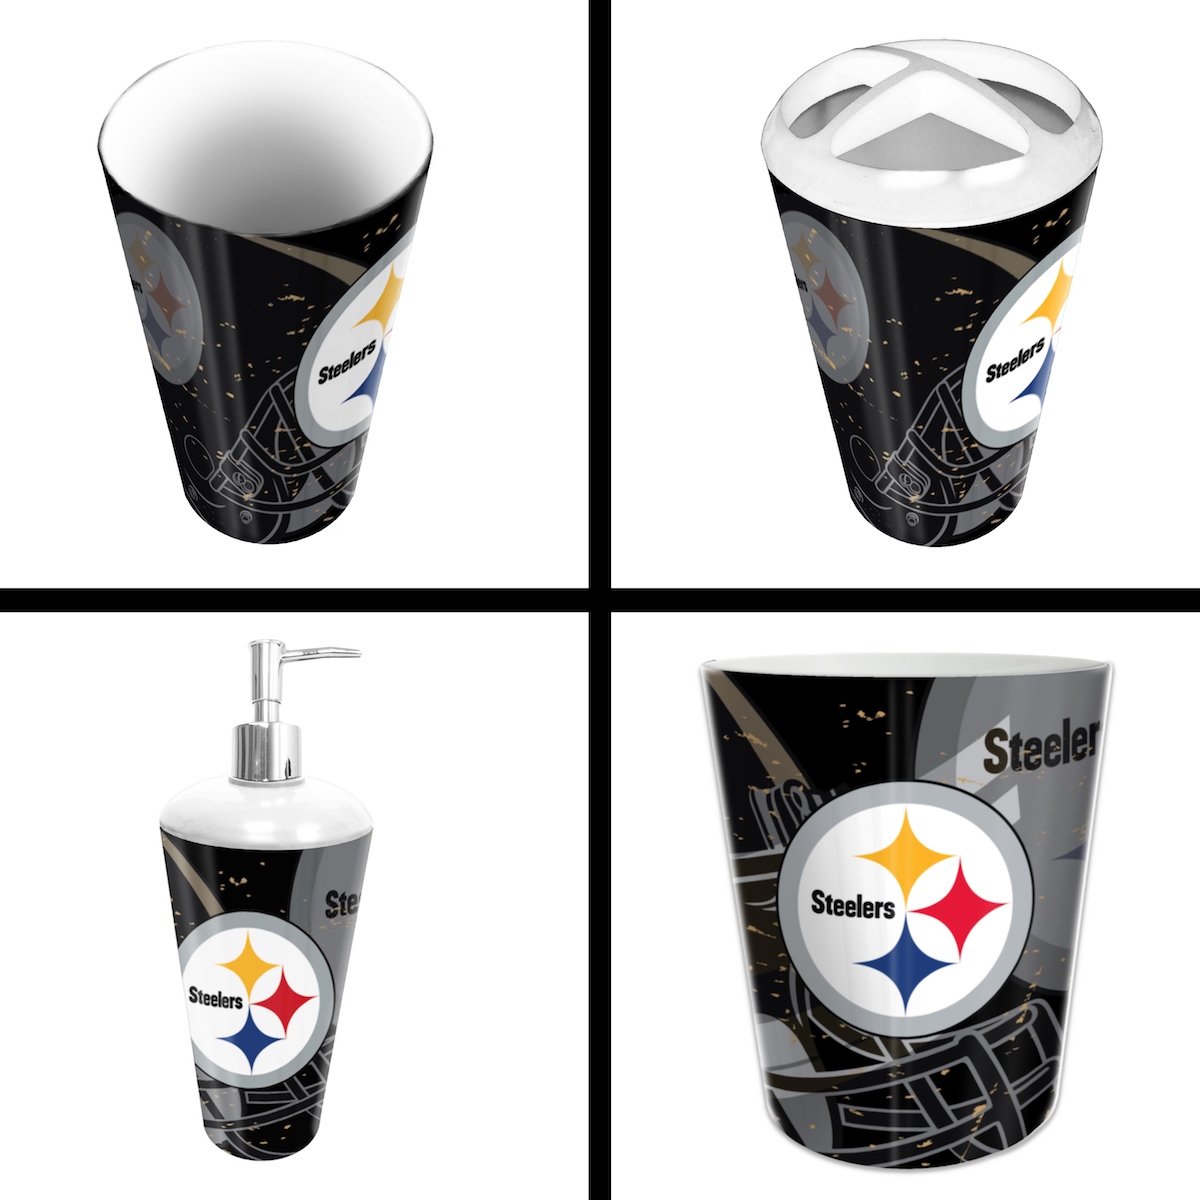 pittsburgh steelers 4 piece bathroom accessory set buy at khc sports. Black Bedroom Furniture Sets. Home Design Ideas